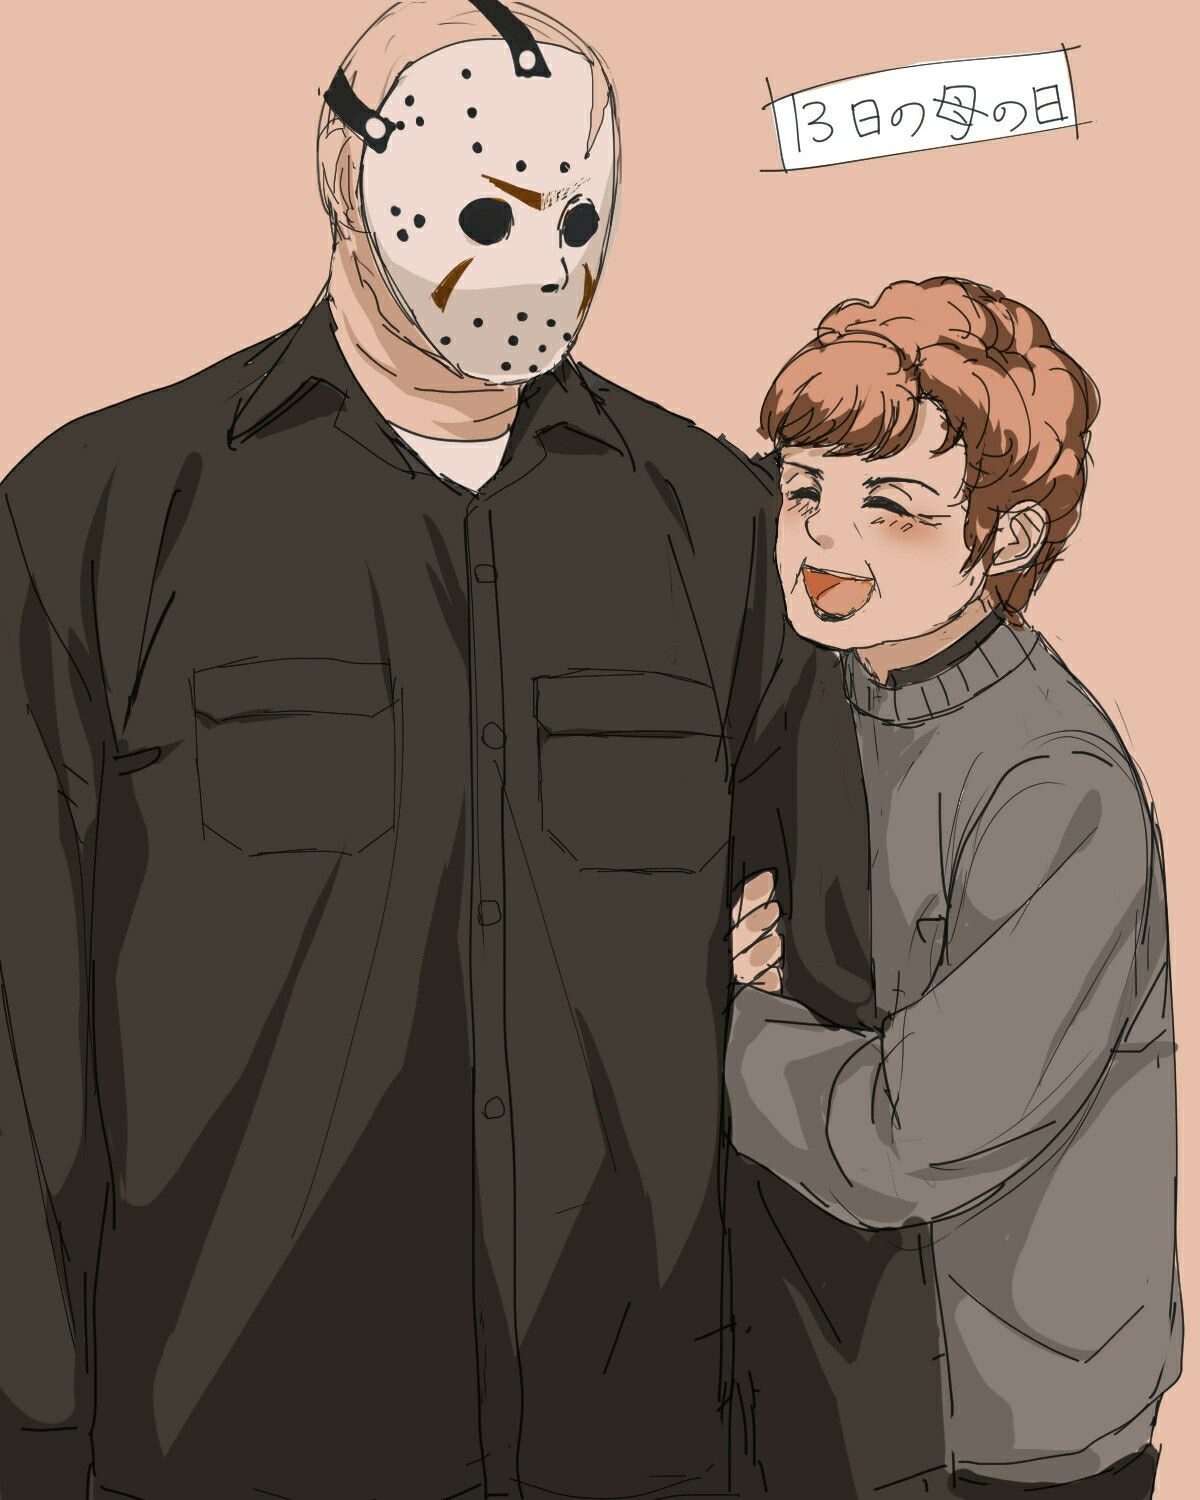 Friday the 13th, Jason Voorhees, Pamela Voorhees, Mom, Horror Characters, Horror Movies, Pixiv (Credits for the artist)